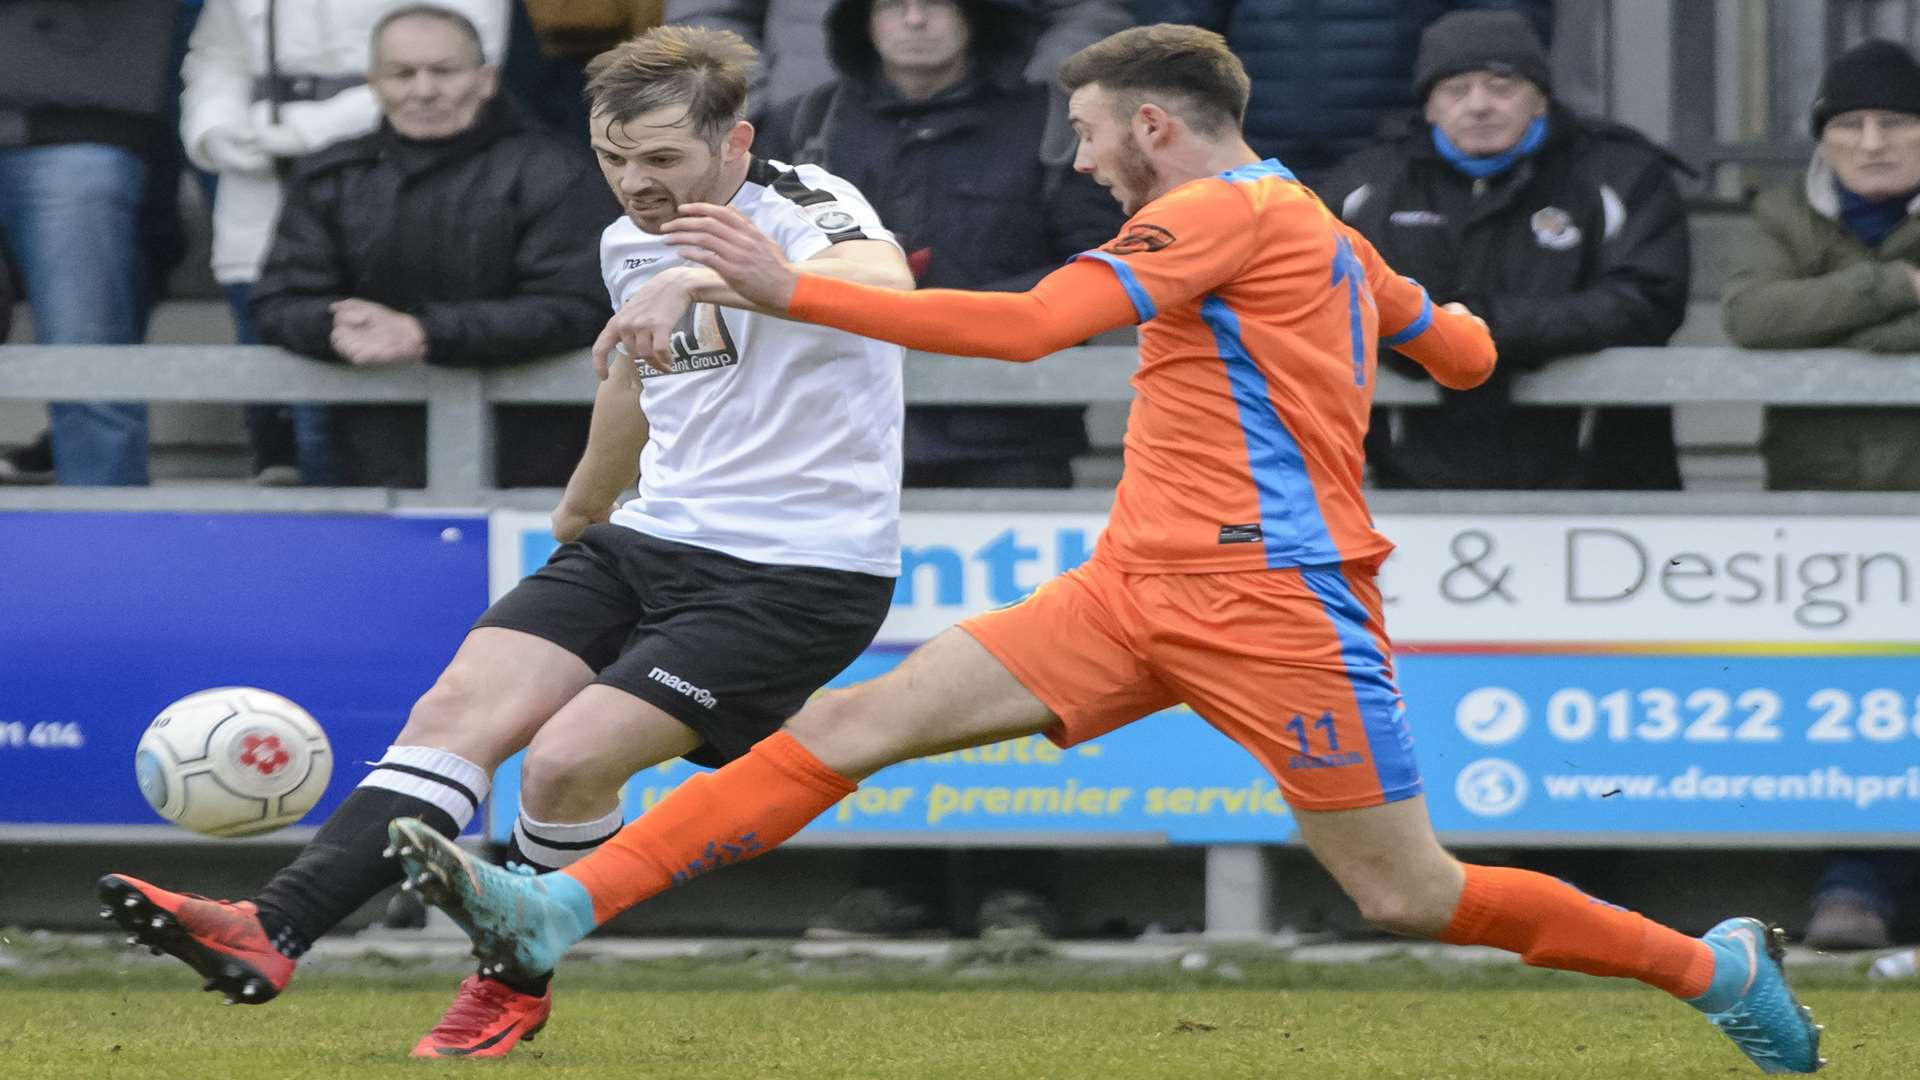 Dartford's Tom Murphy crosses from the left wing. Picture: Andy Payton